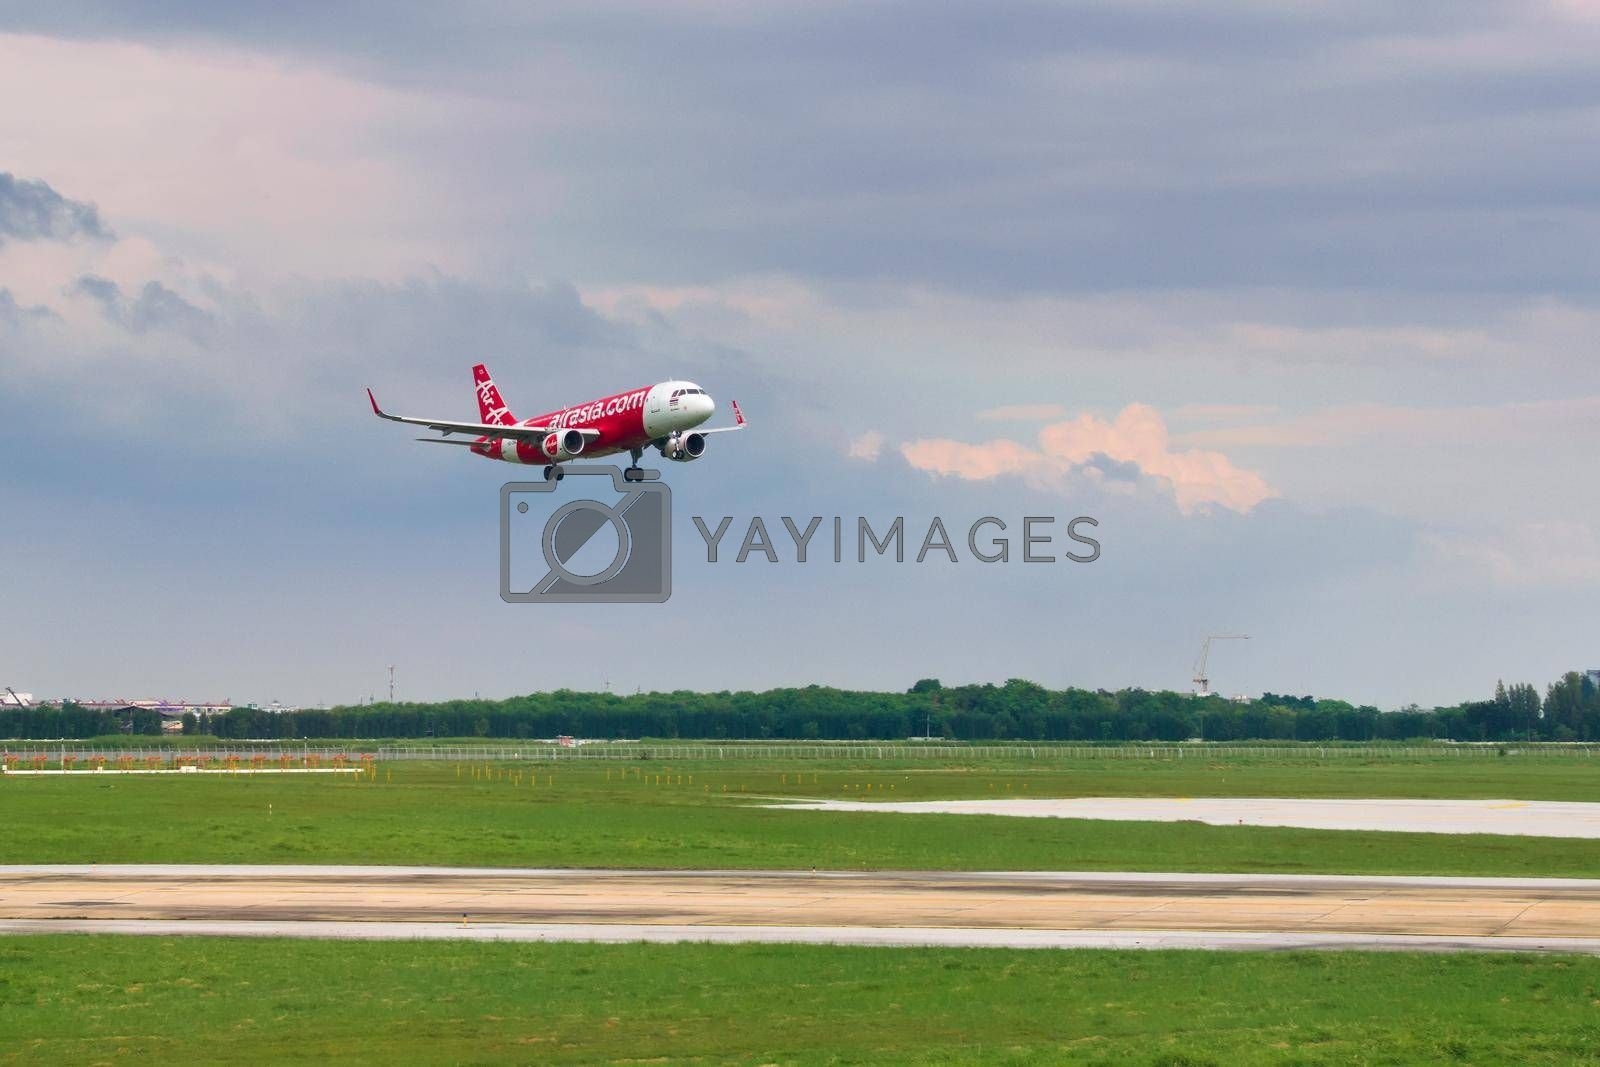 Royalty free image of 2019-11-14 / Ho Chi Minh City, Vietnam - An Air Asia airliner lining up on the final approach for landing. by hernan_hyper